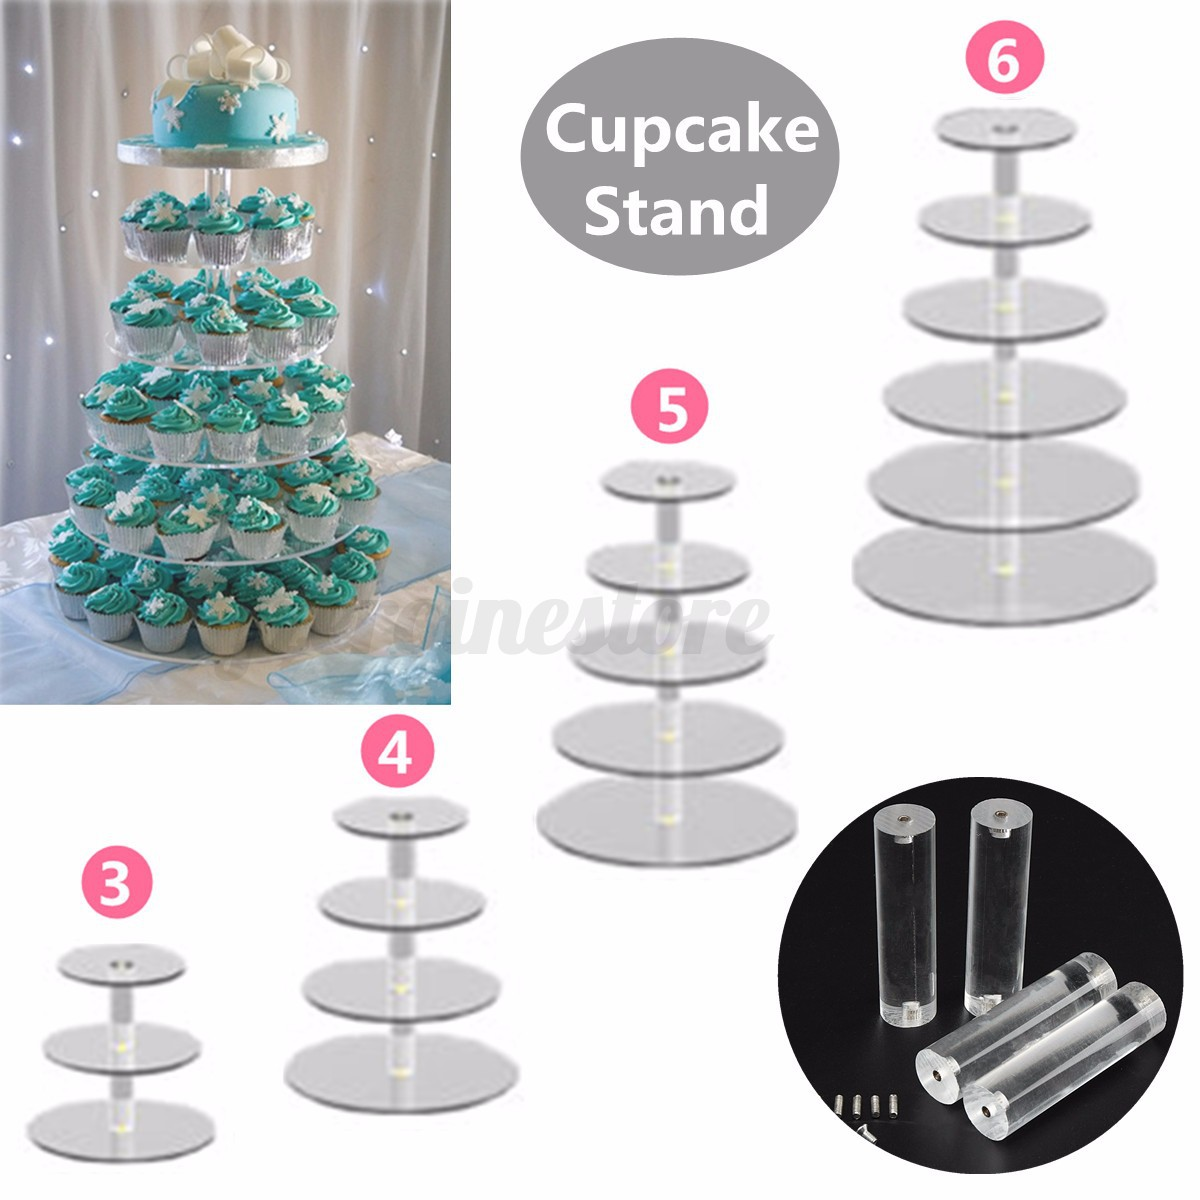 how to make a 5 tier cupcake stand